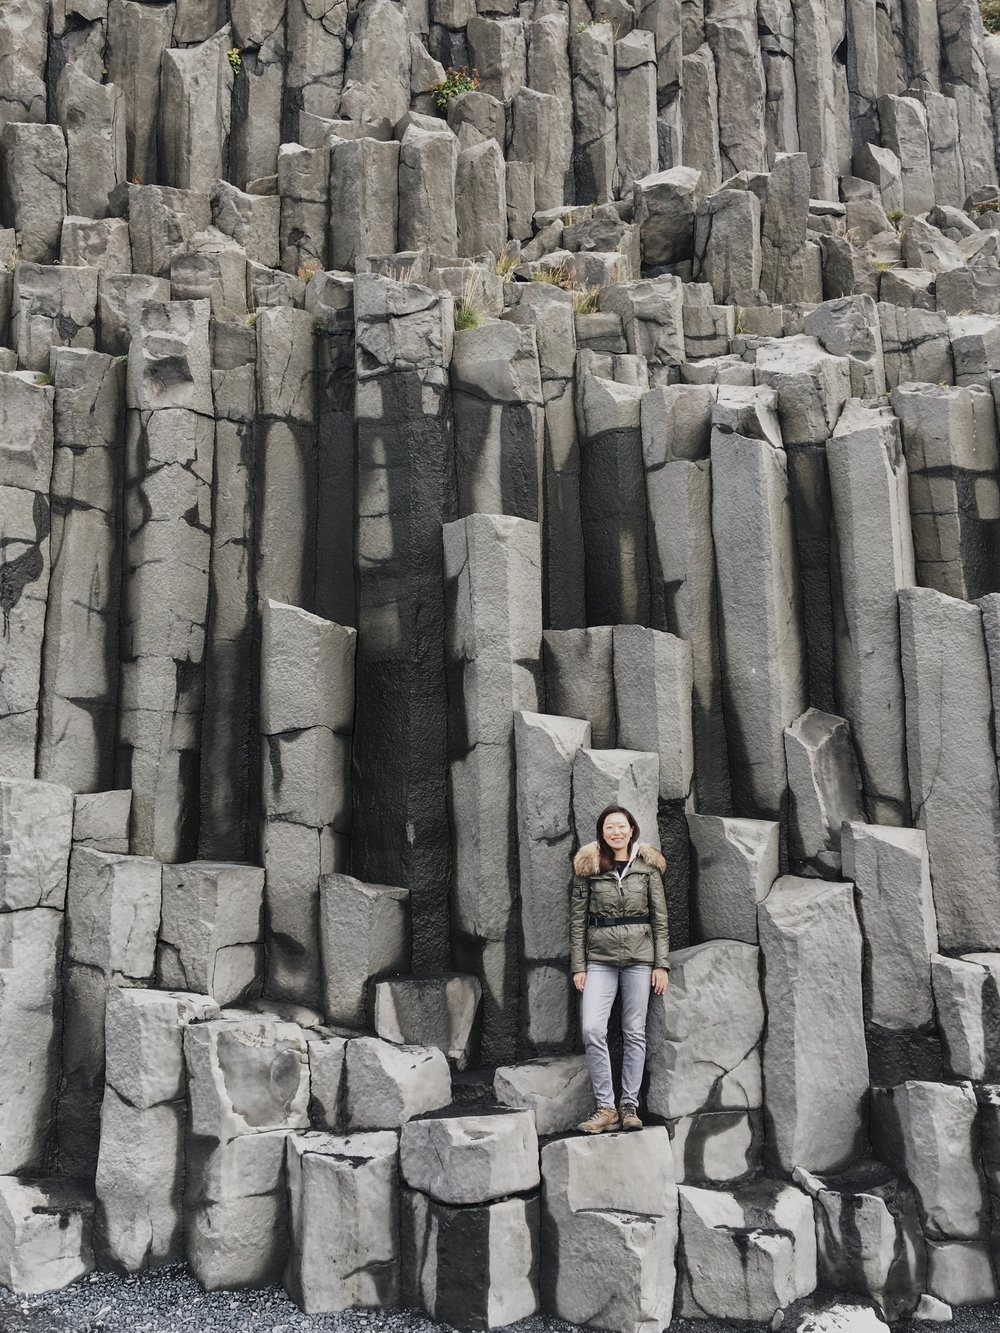 Day 3: Basalt columns created from cooling lava. Tons of people here trying to get their Instagram photos in.